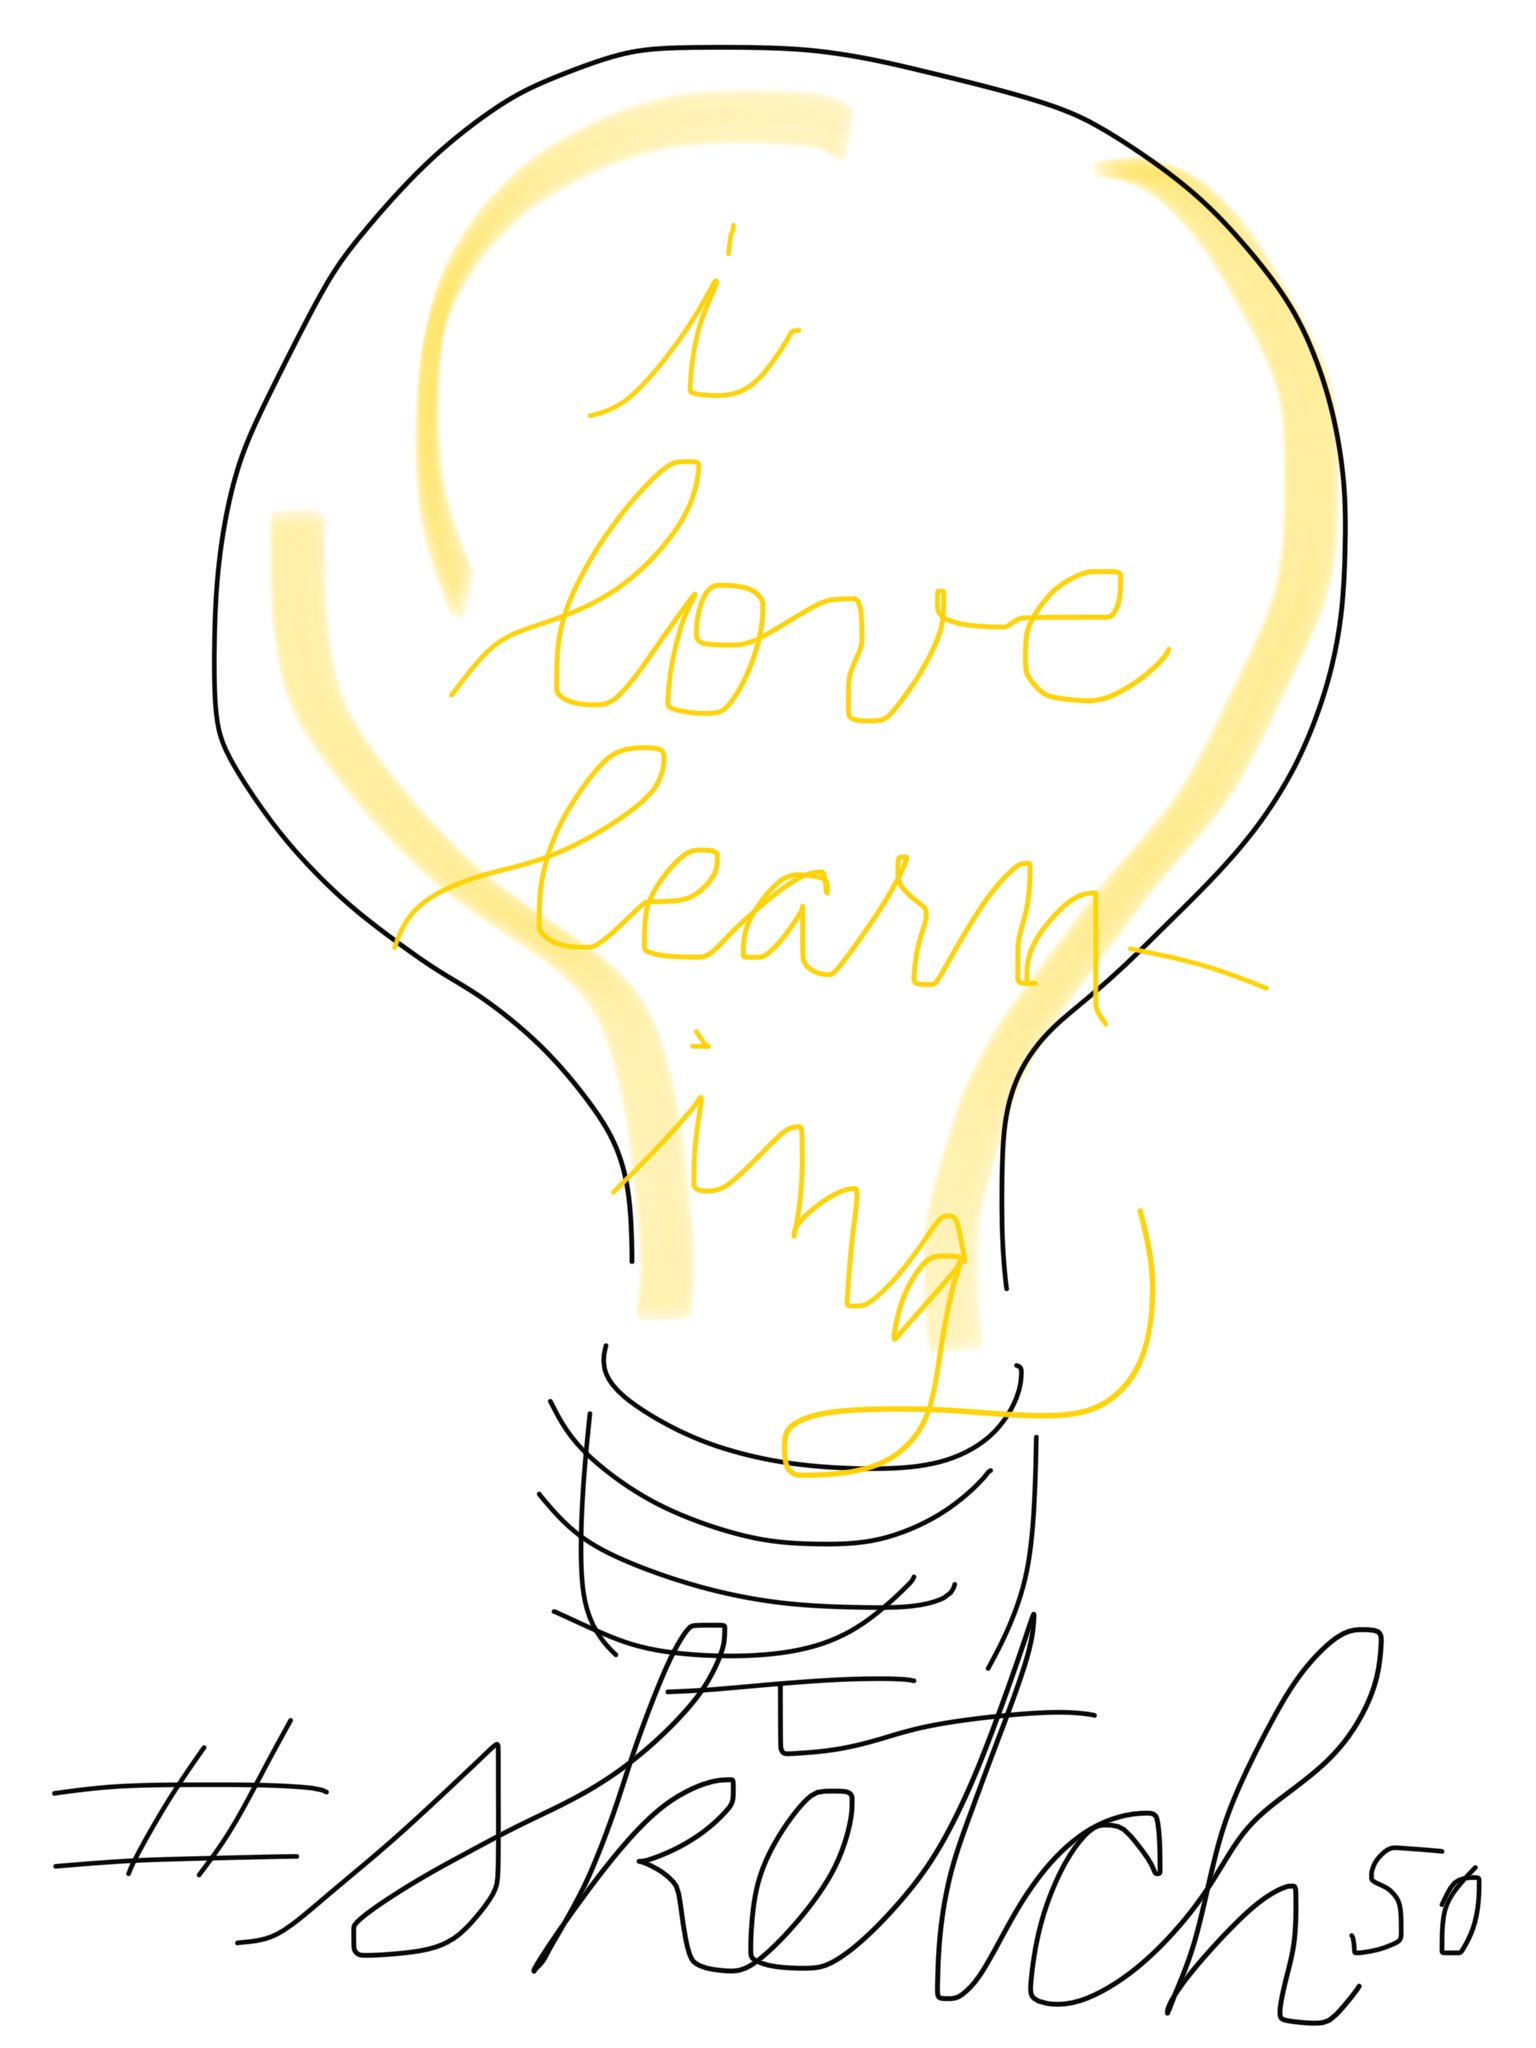 Day 1: lightbulb! #sketch50 https://t.co/R7wAqUkzud